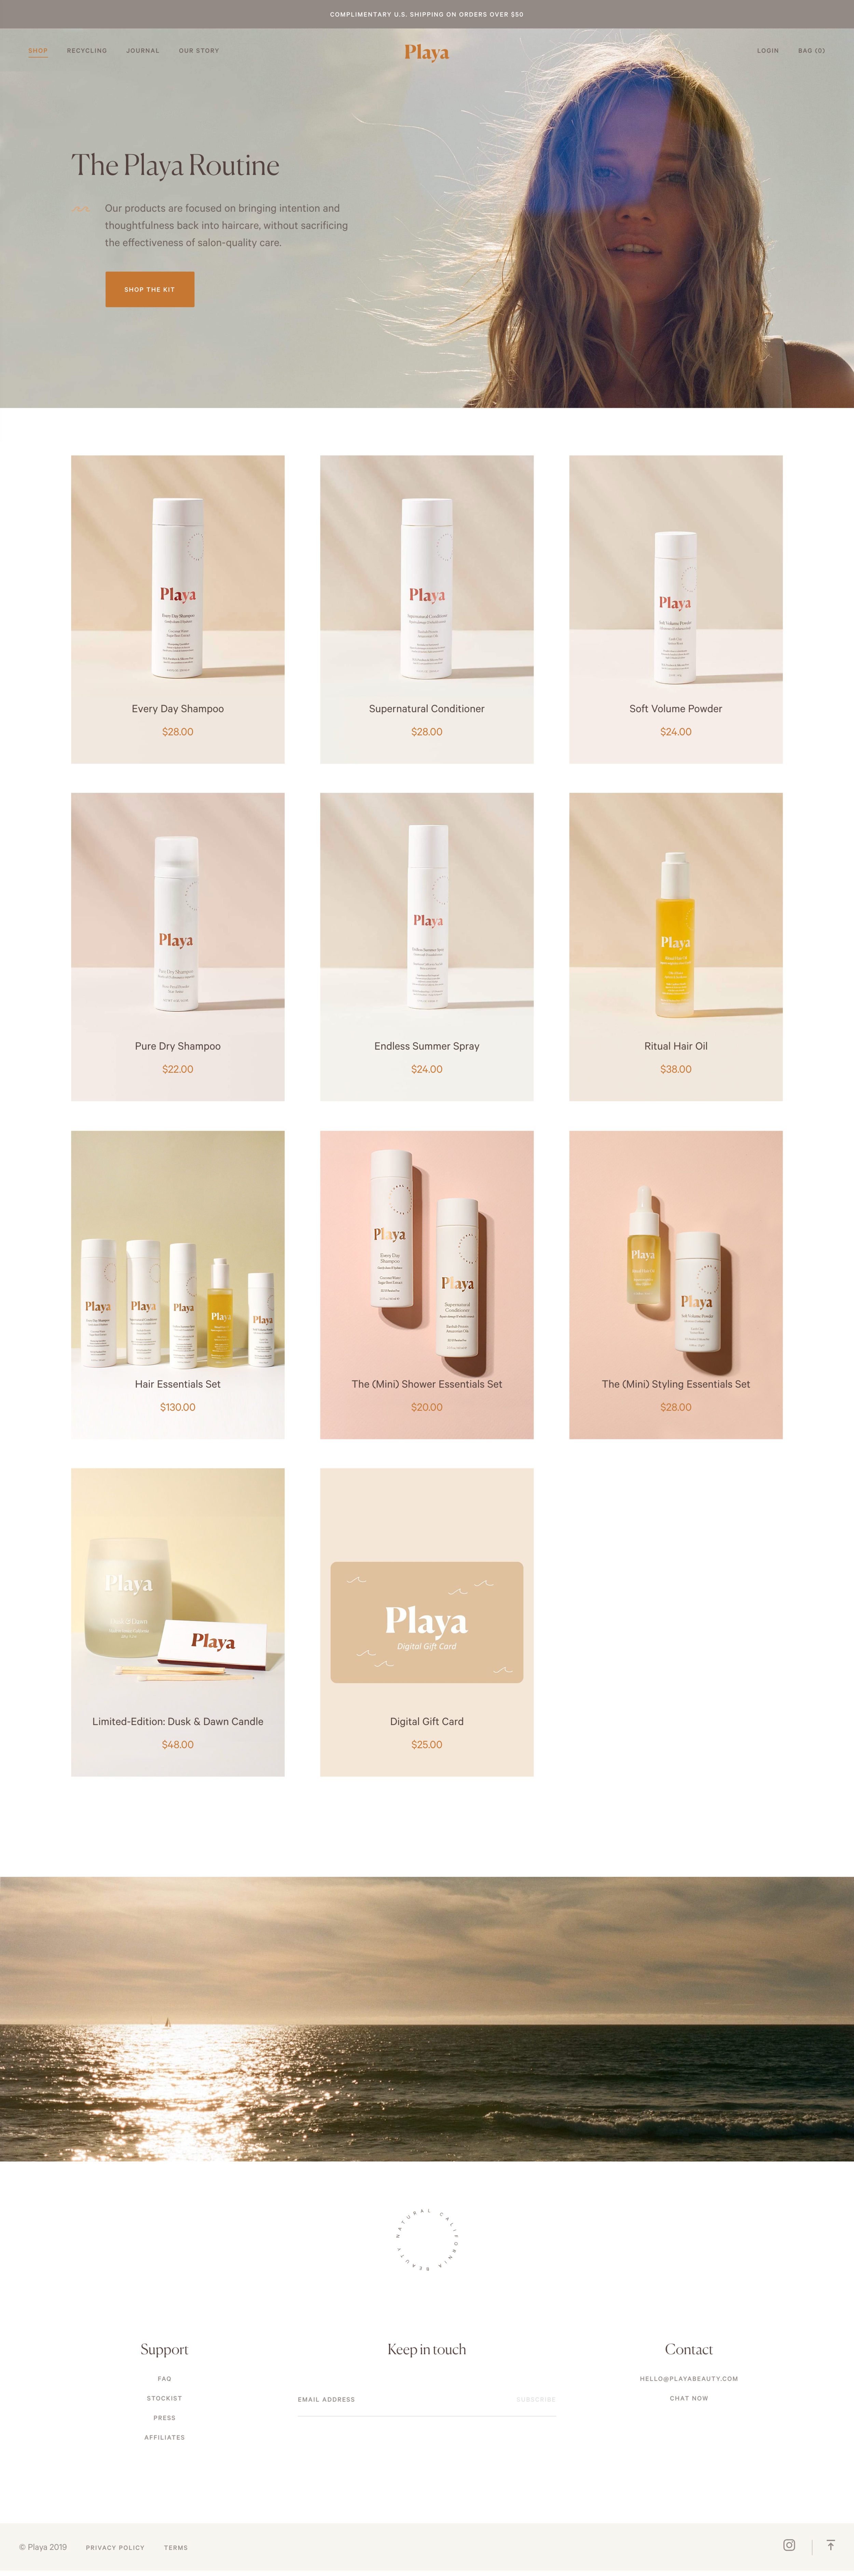 screencapture-playabeauty-collections-all-2019-01-08-15_37_17.png